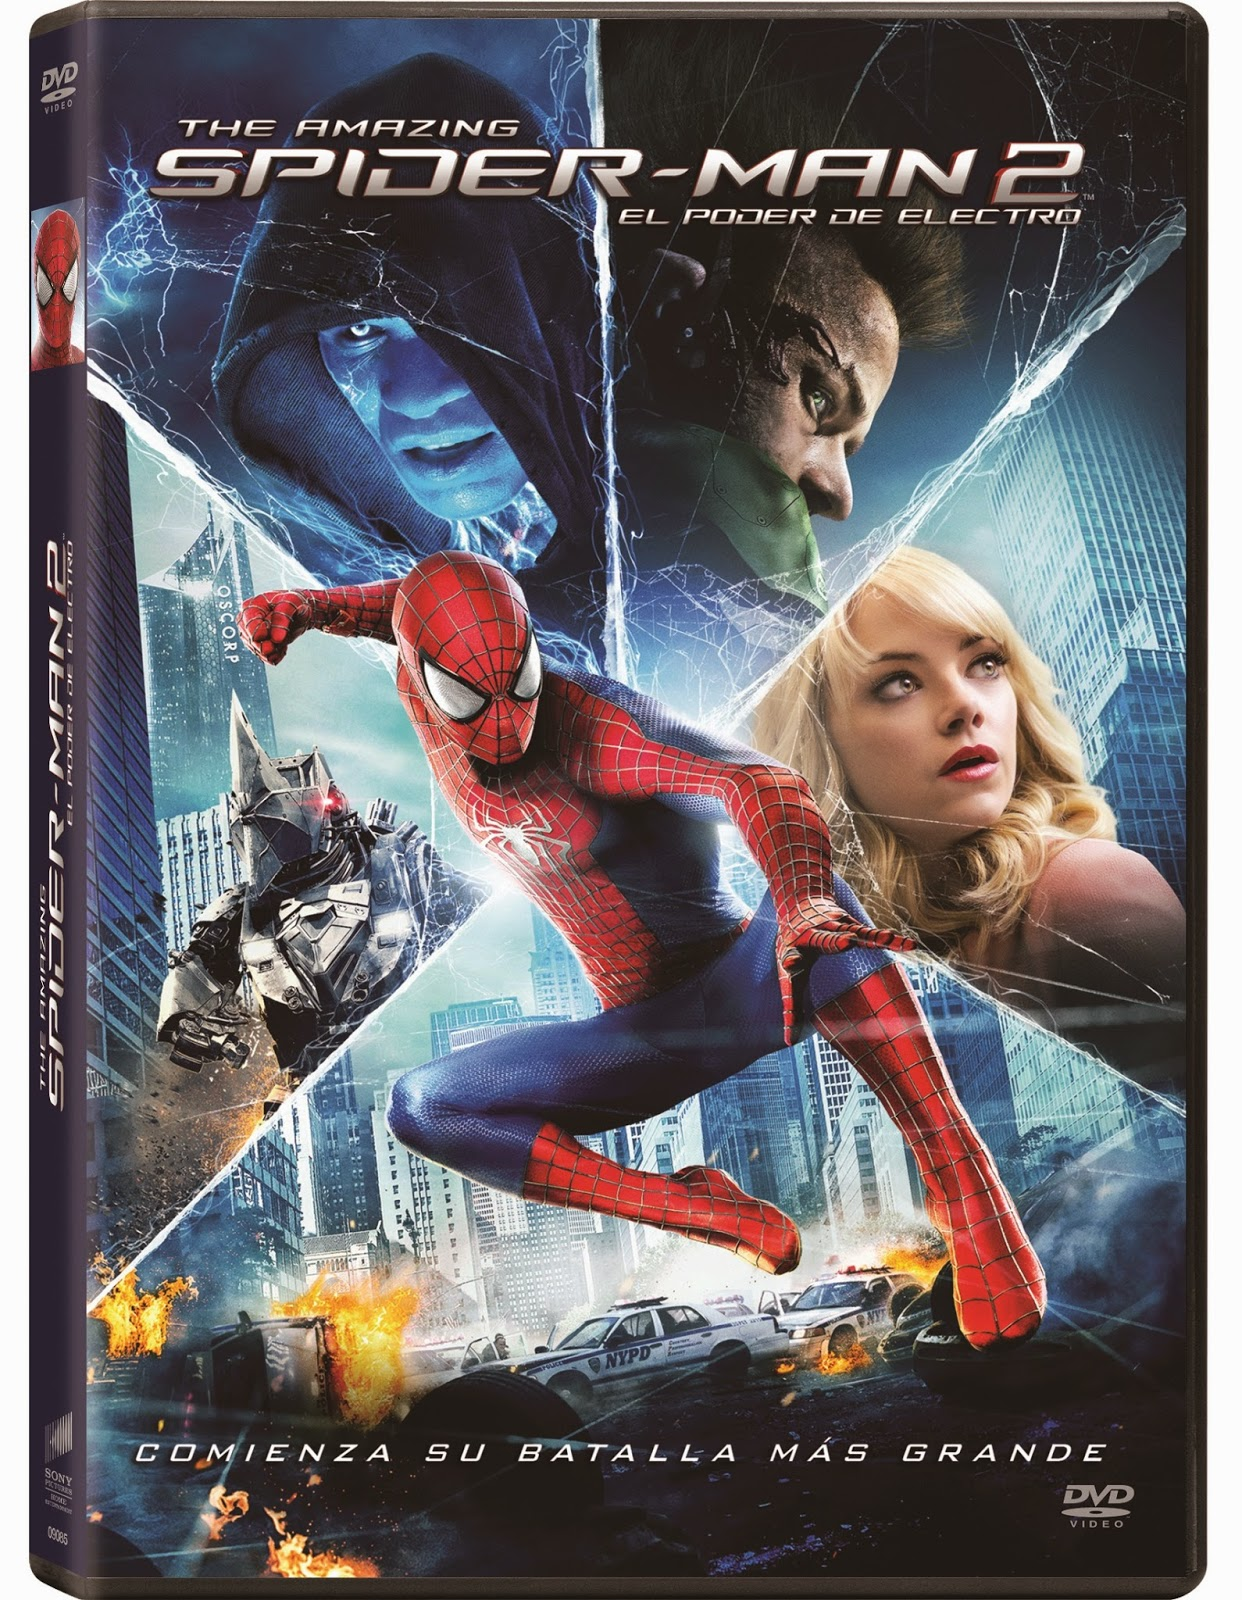 The Amazing Spider-Man 2: Rise Of Electro Besetzung